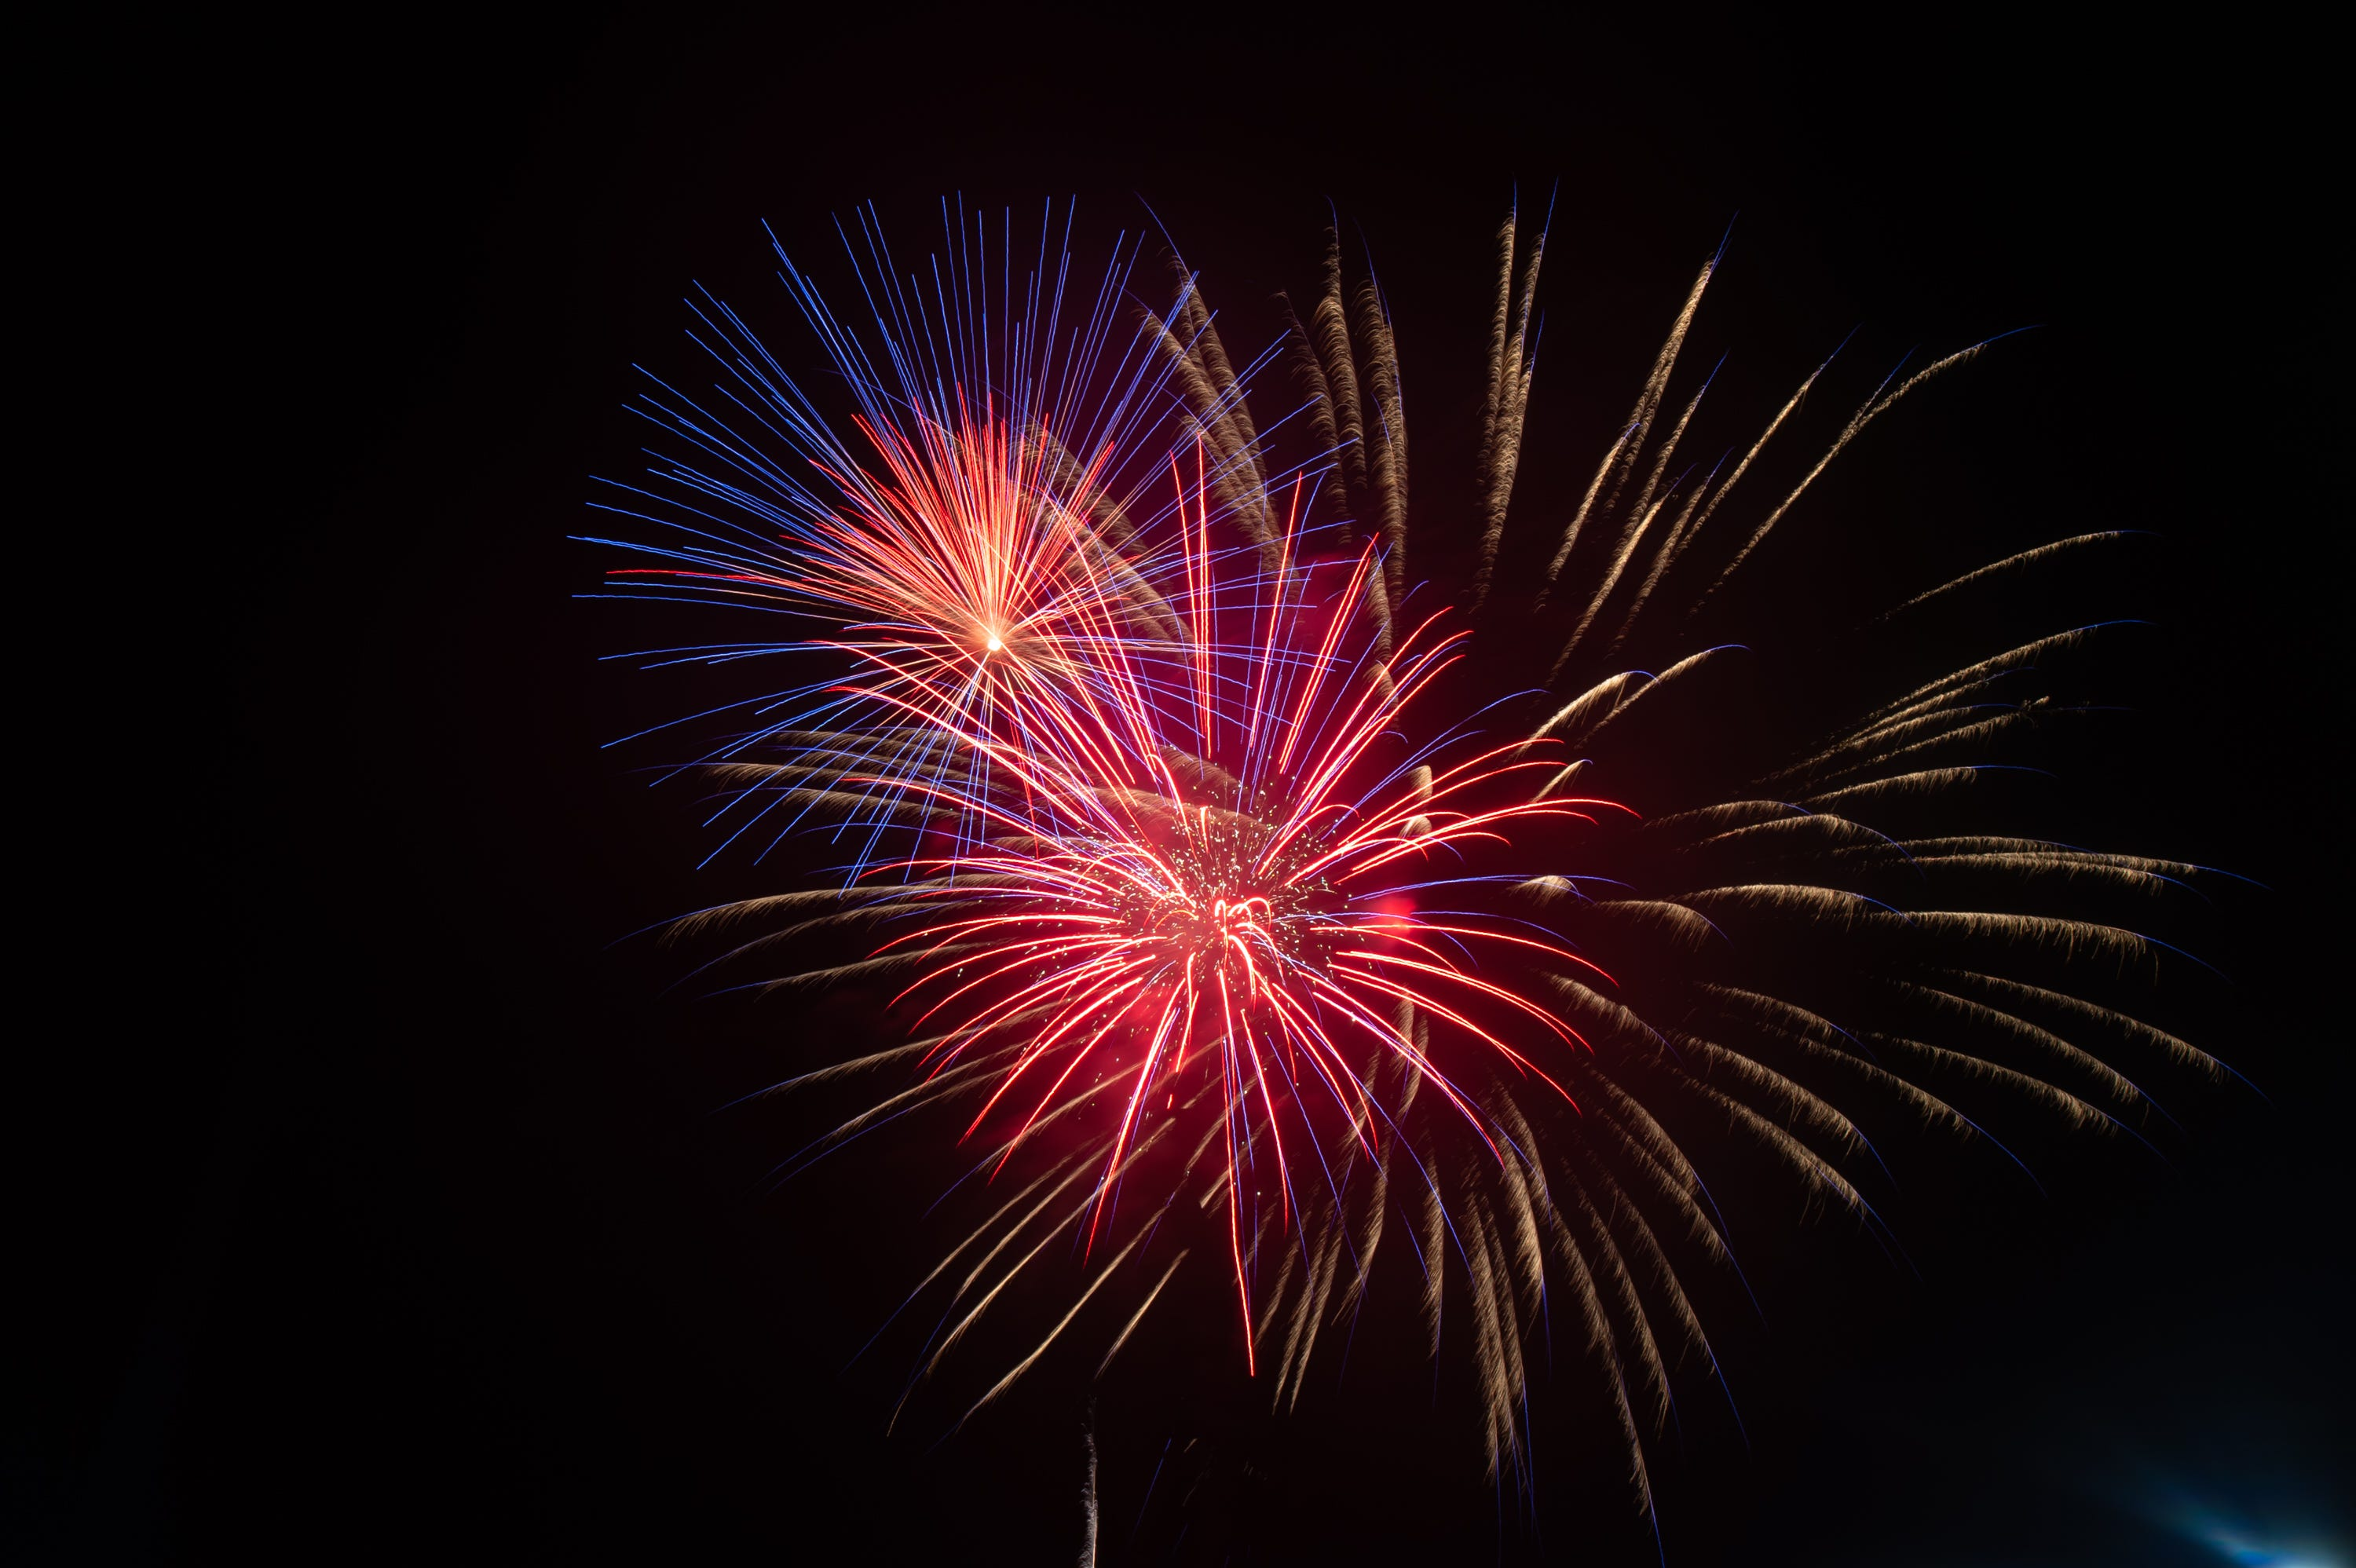 How to buy, light fireworks safely